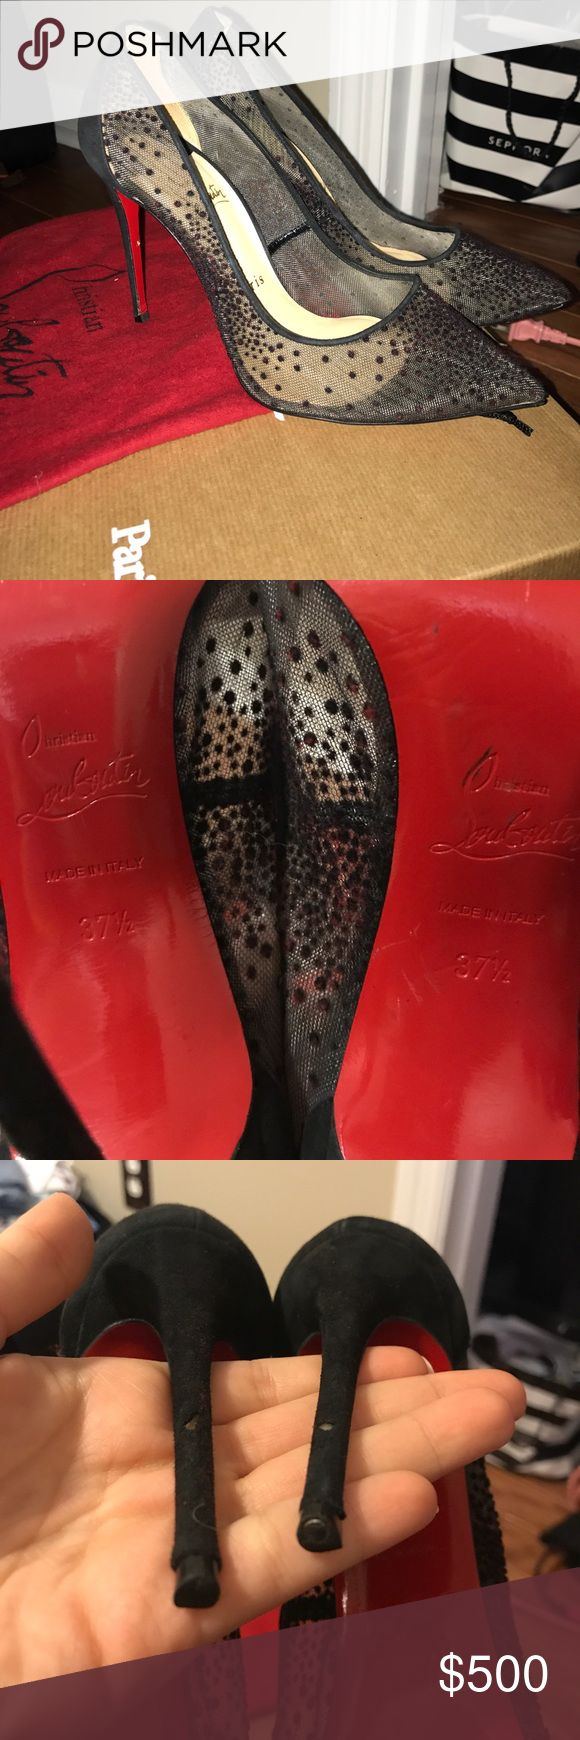 Black louboutin heels The best heals everrrrr love these simple classy heels. They are my very first pair and do have wear but nothing a shoe place can't fix Christian Louboutin Shoes Heels